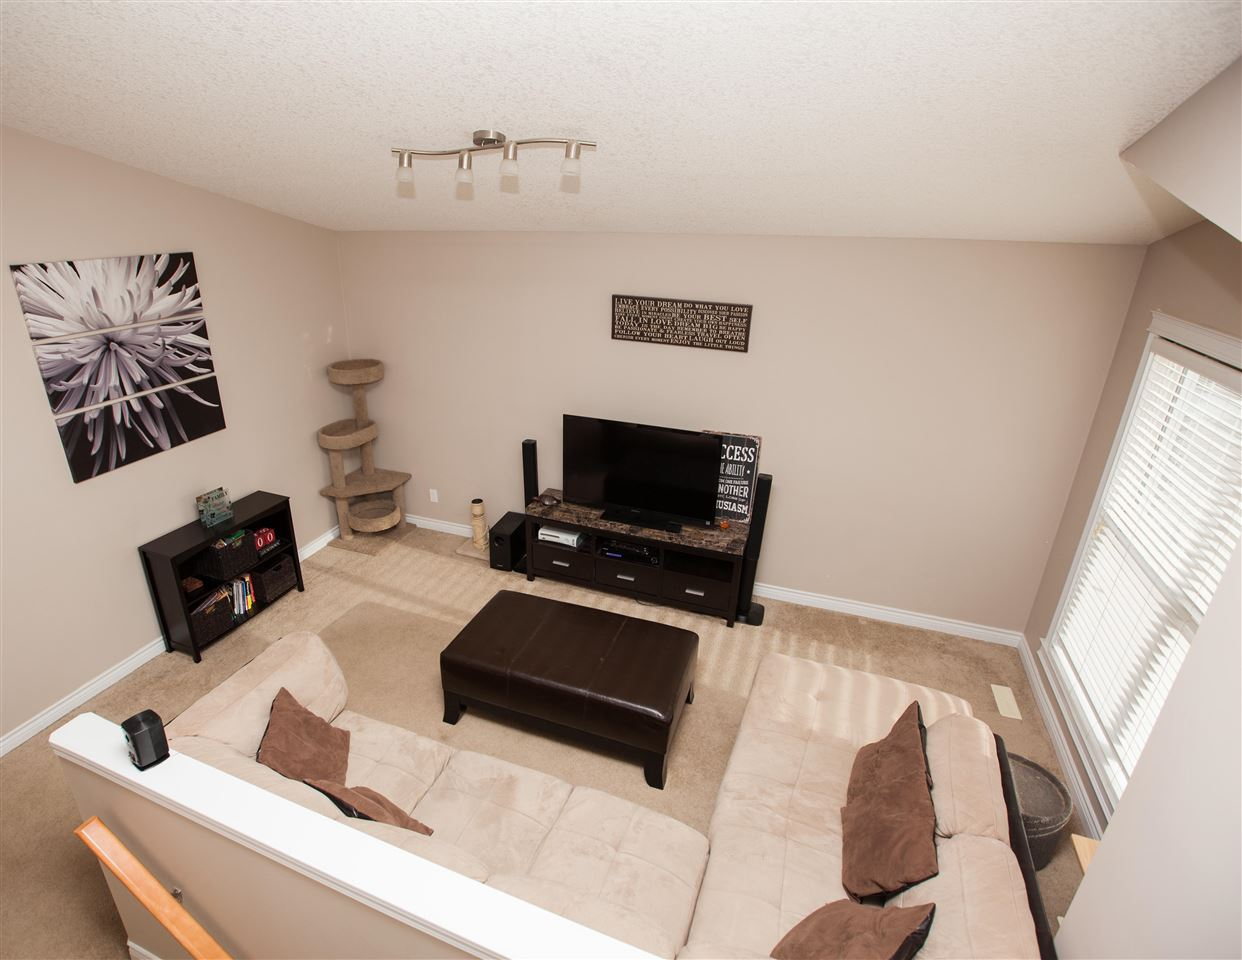 Photo 7: 8107 94 Street: Morinville House for sale : MLS(r) # E4061892